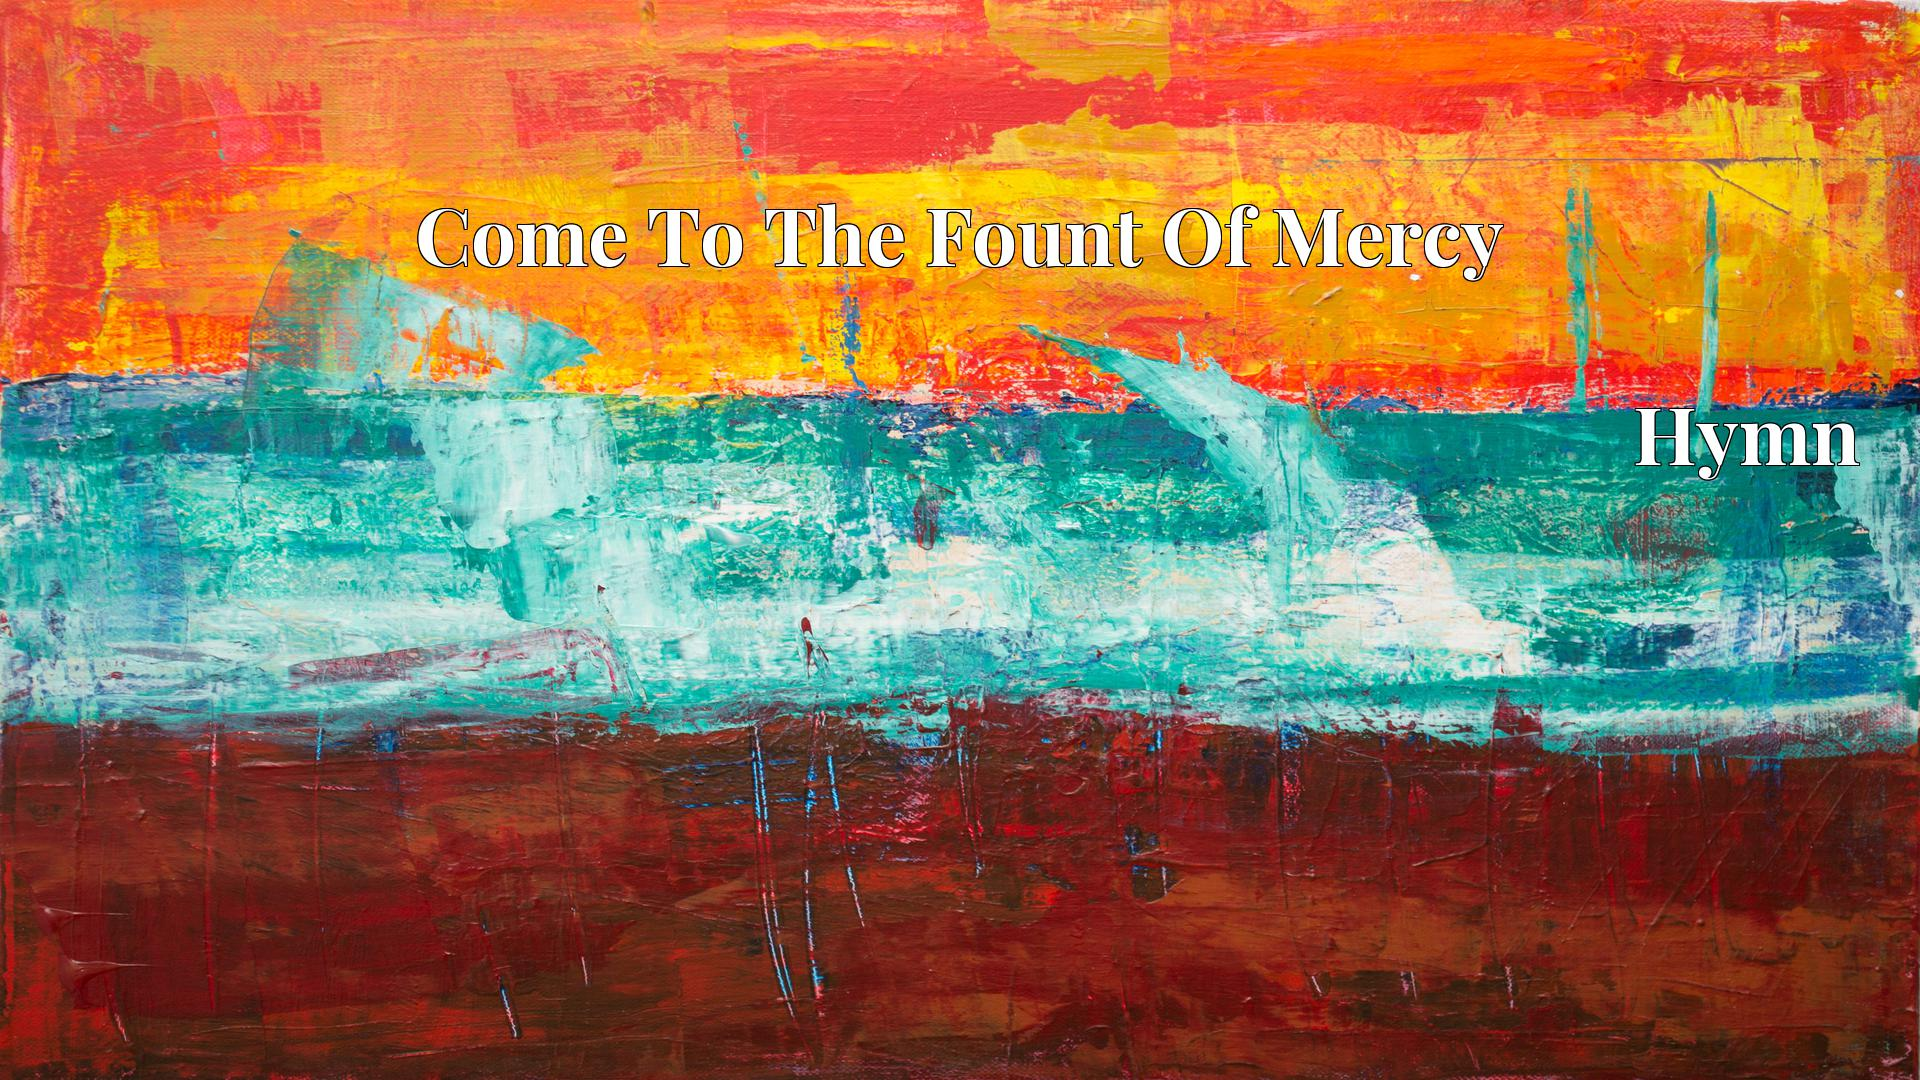 Come To The Fount Of Mercy - Hymn